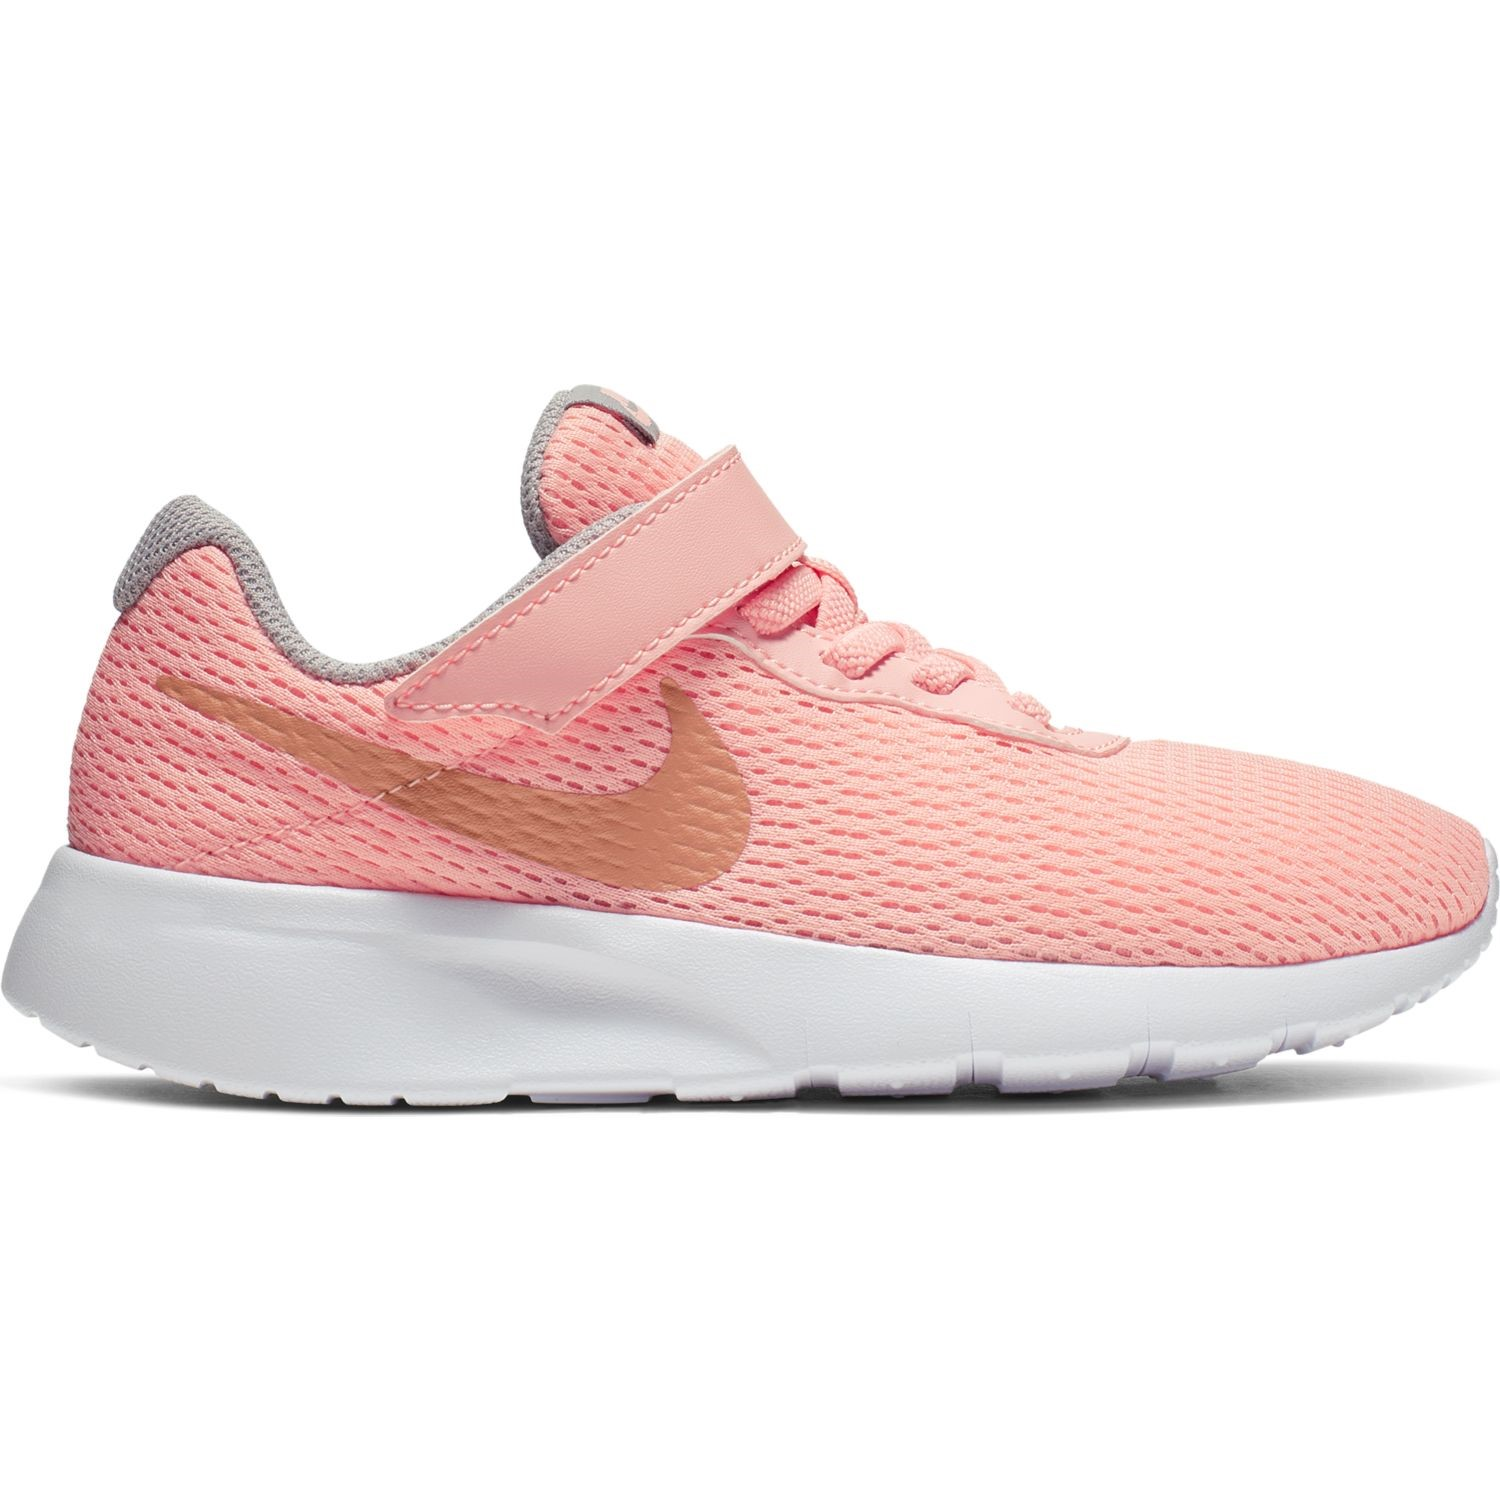 Nike Tanjun Girls Running Shoes Little Kids